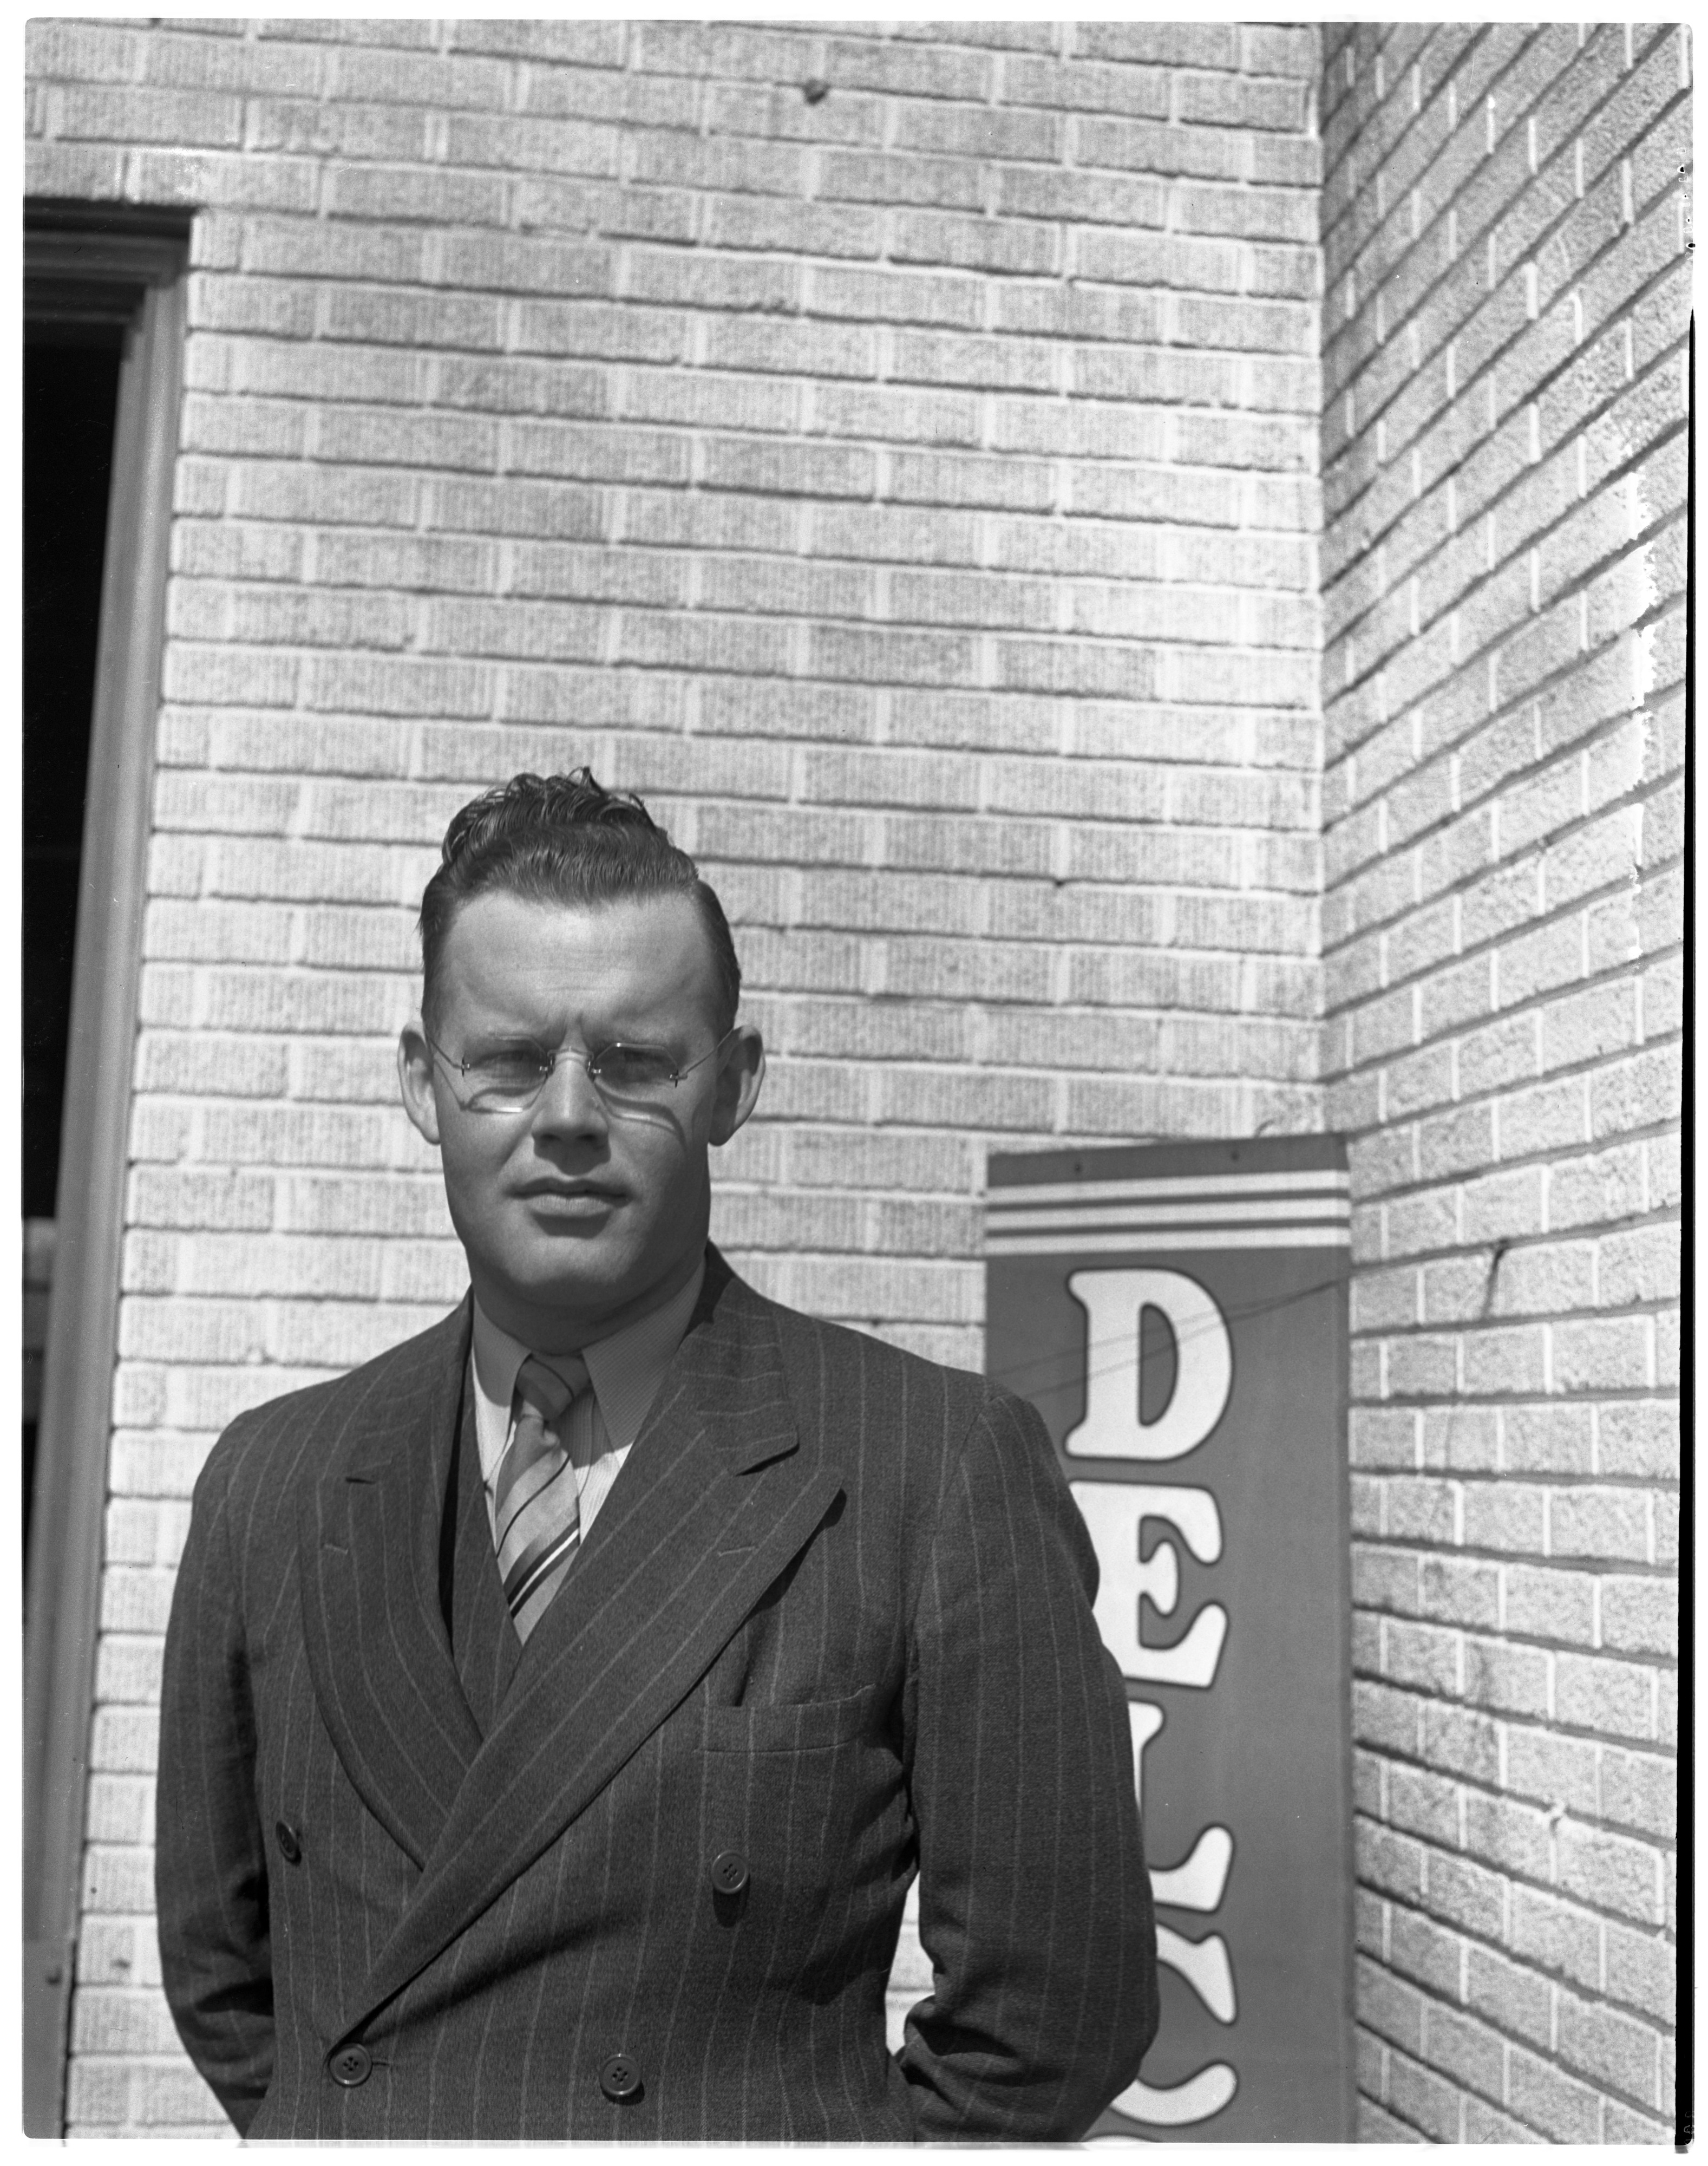 Ed Jones, Owner - C and J Tire Service, May 1940 image